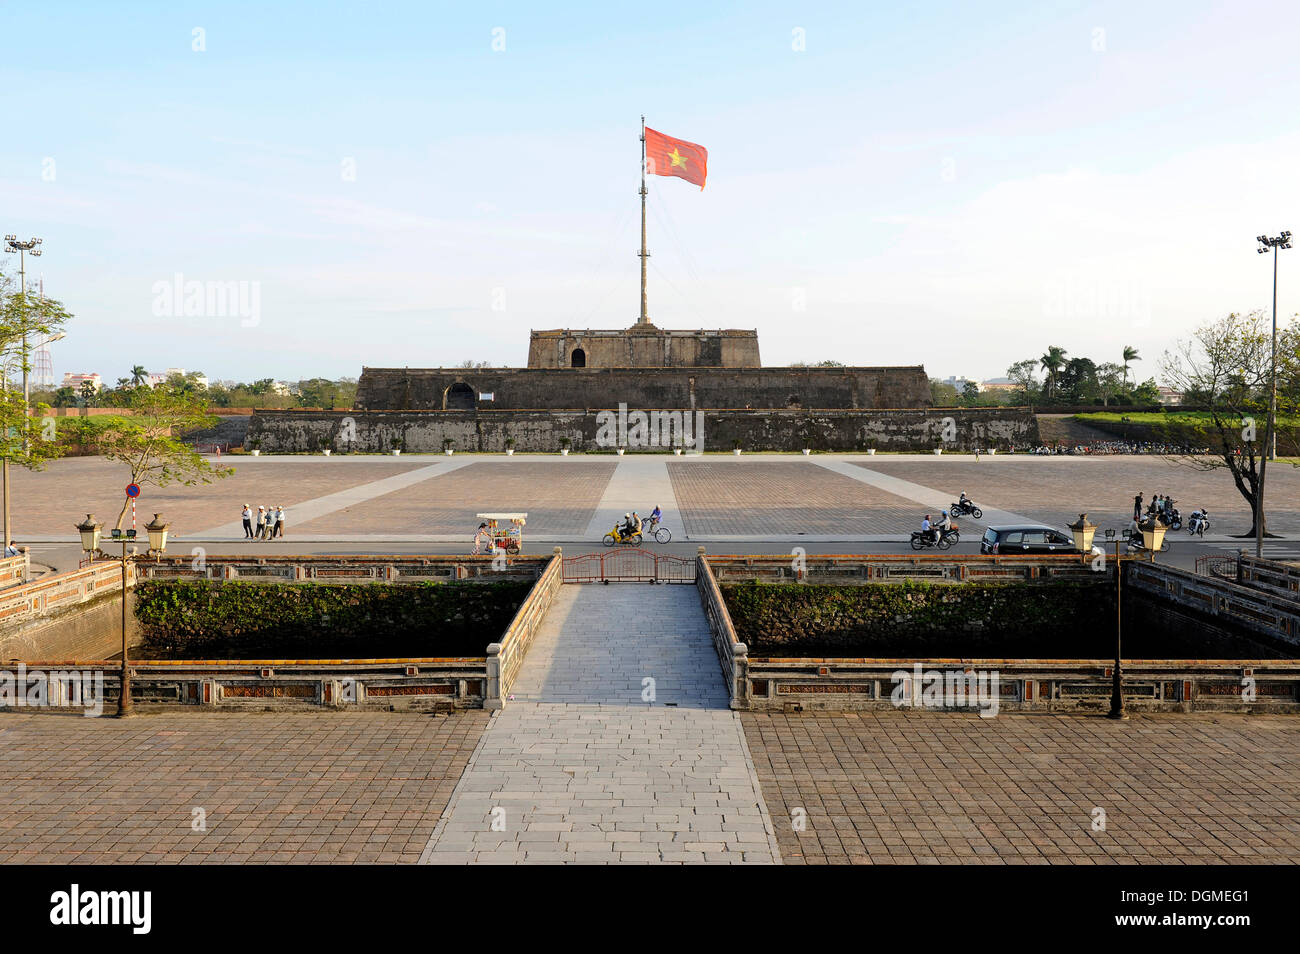 Citadel of the Imperial City in Hue, flagpole, Hue, North Vietnam, Vietnam, Southeast Asia, Asia - Stock Image